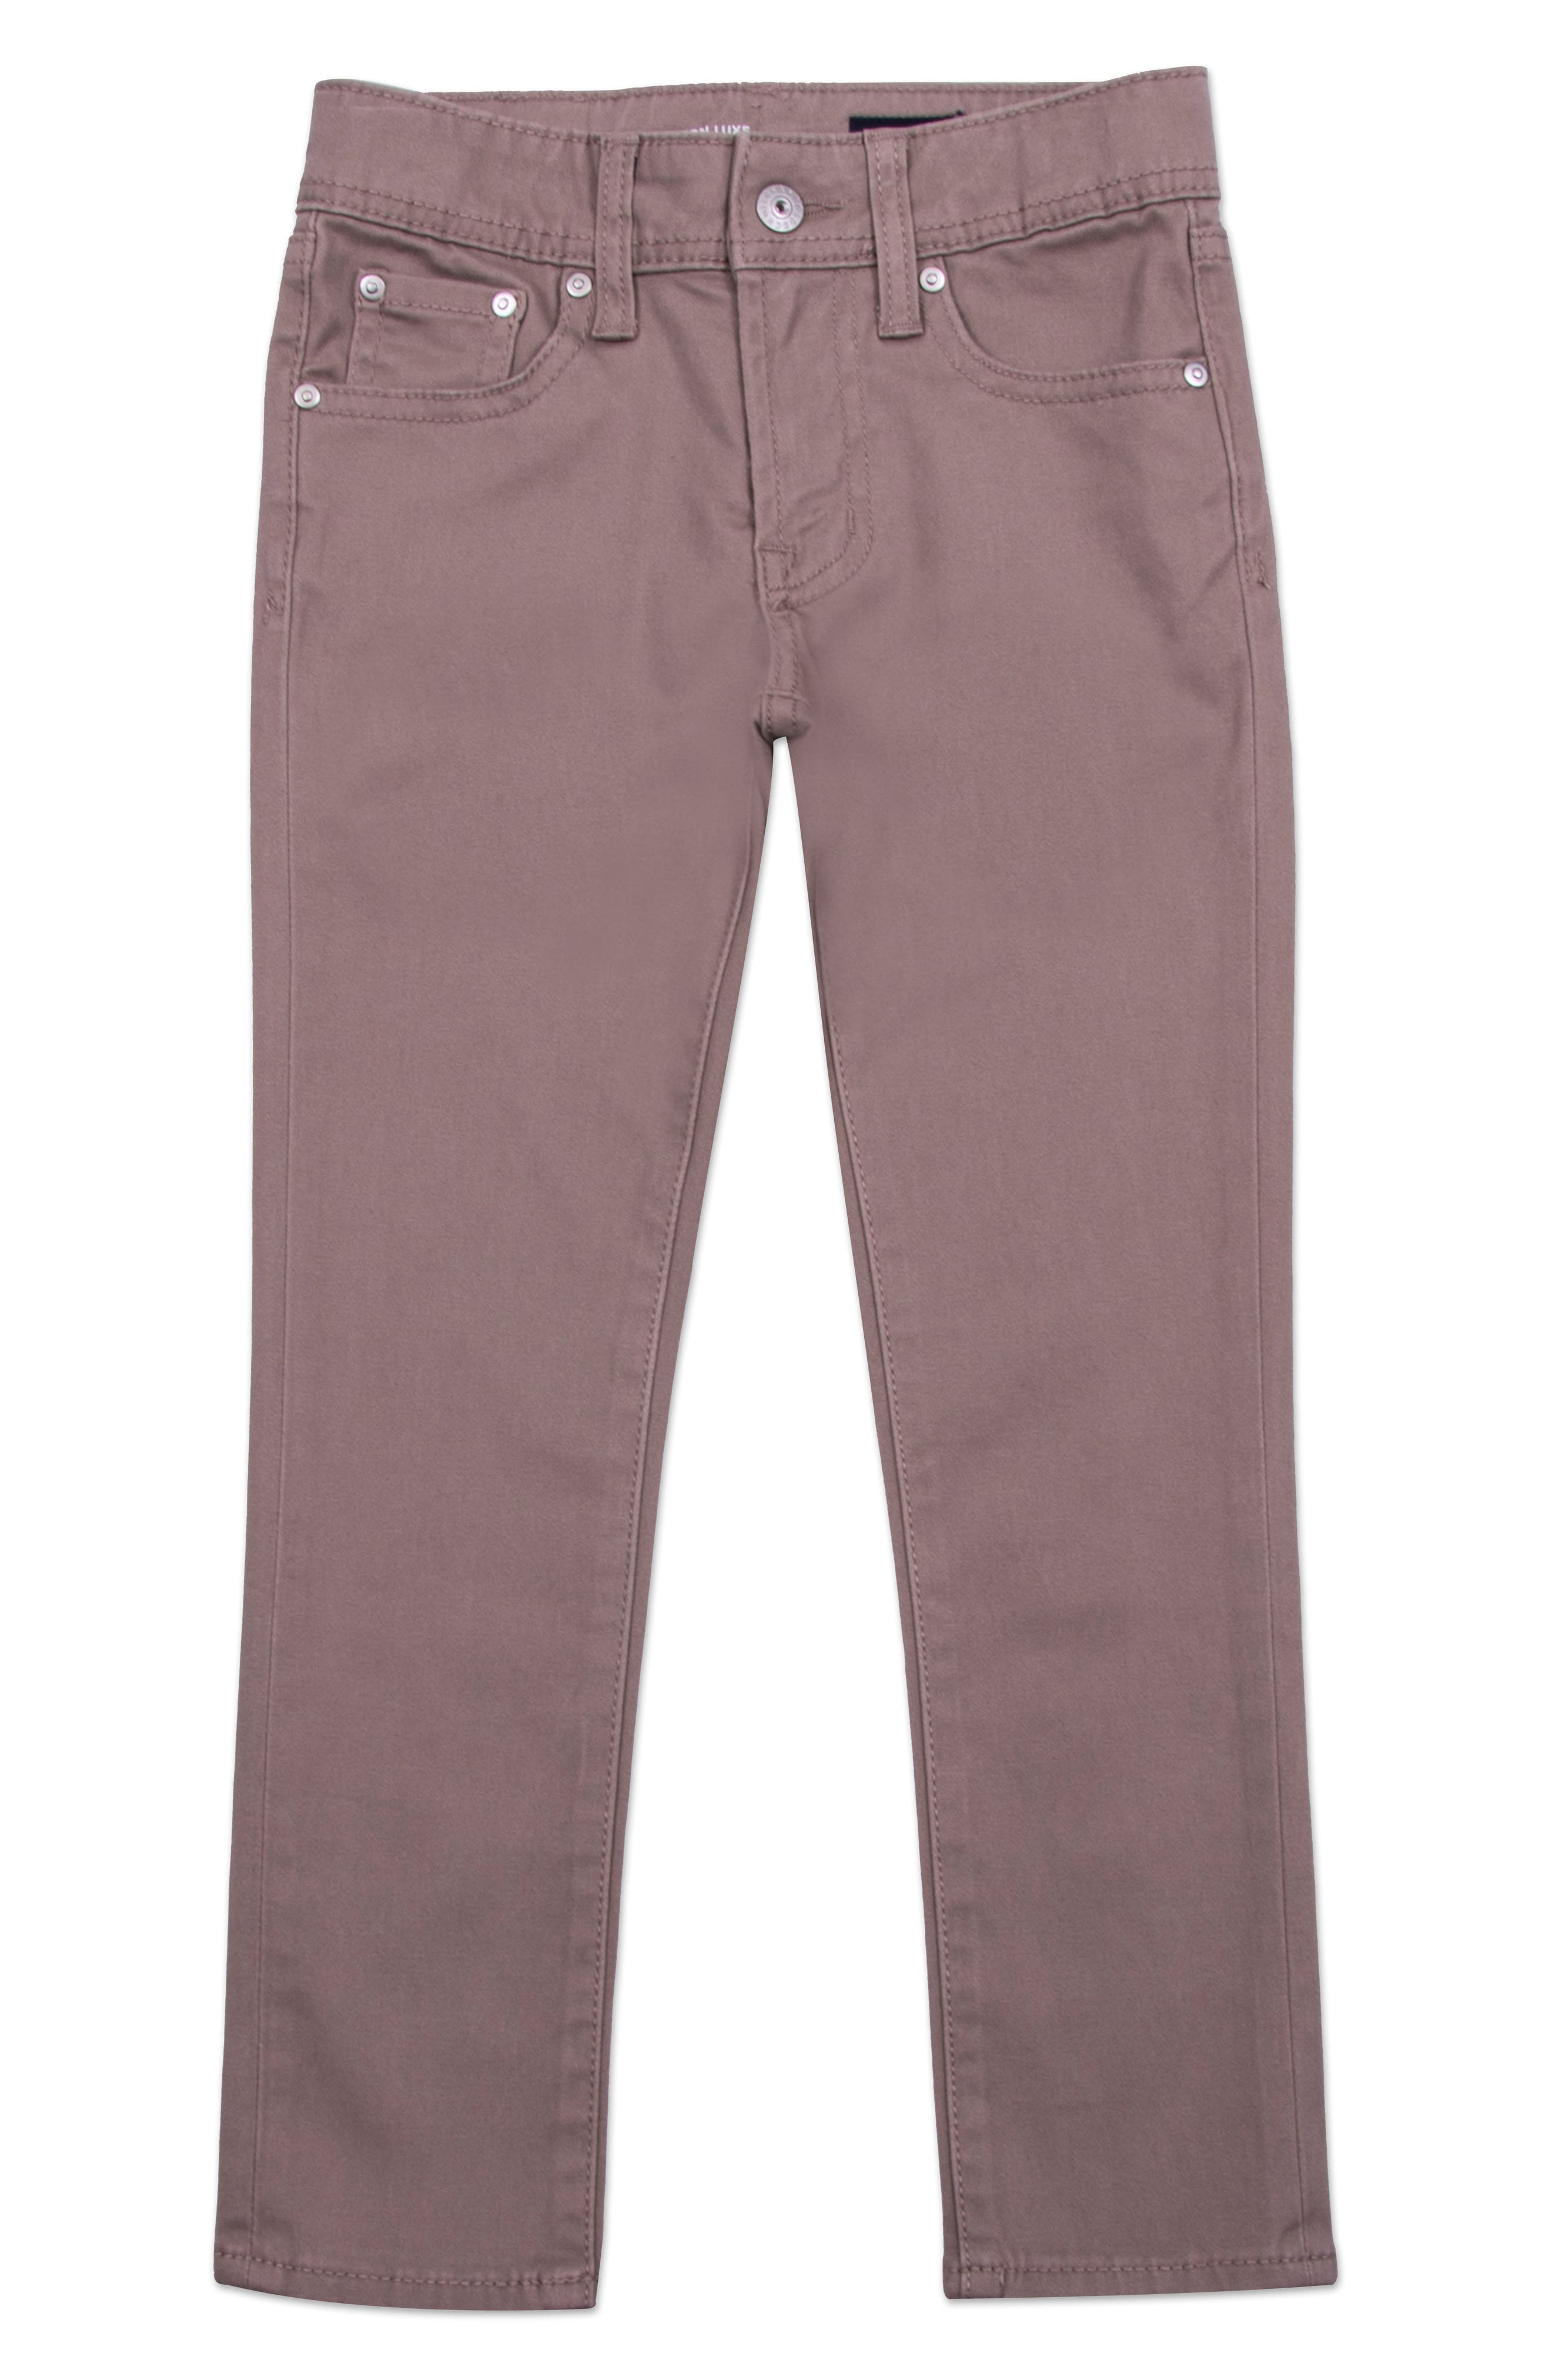 Main Image - ag adriano goldschmied kids The Kingston Luxe Slim Jeans (Toddler Boys & Little Boys)